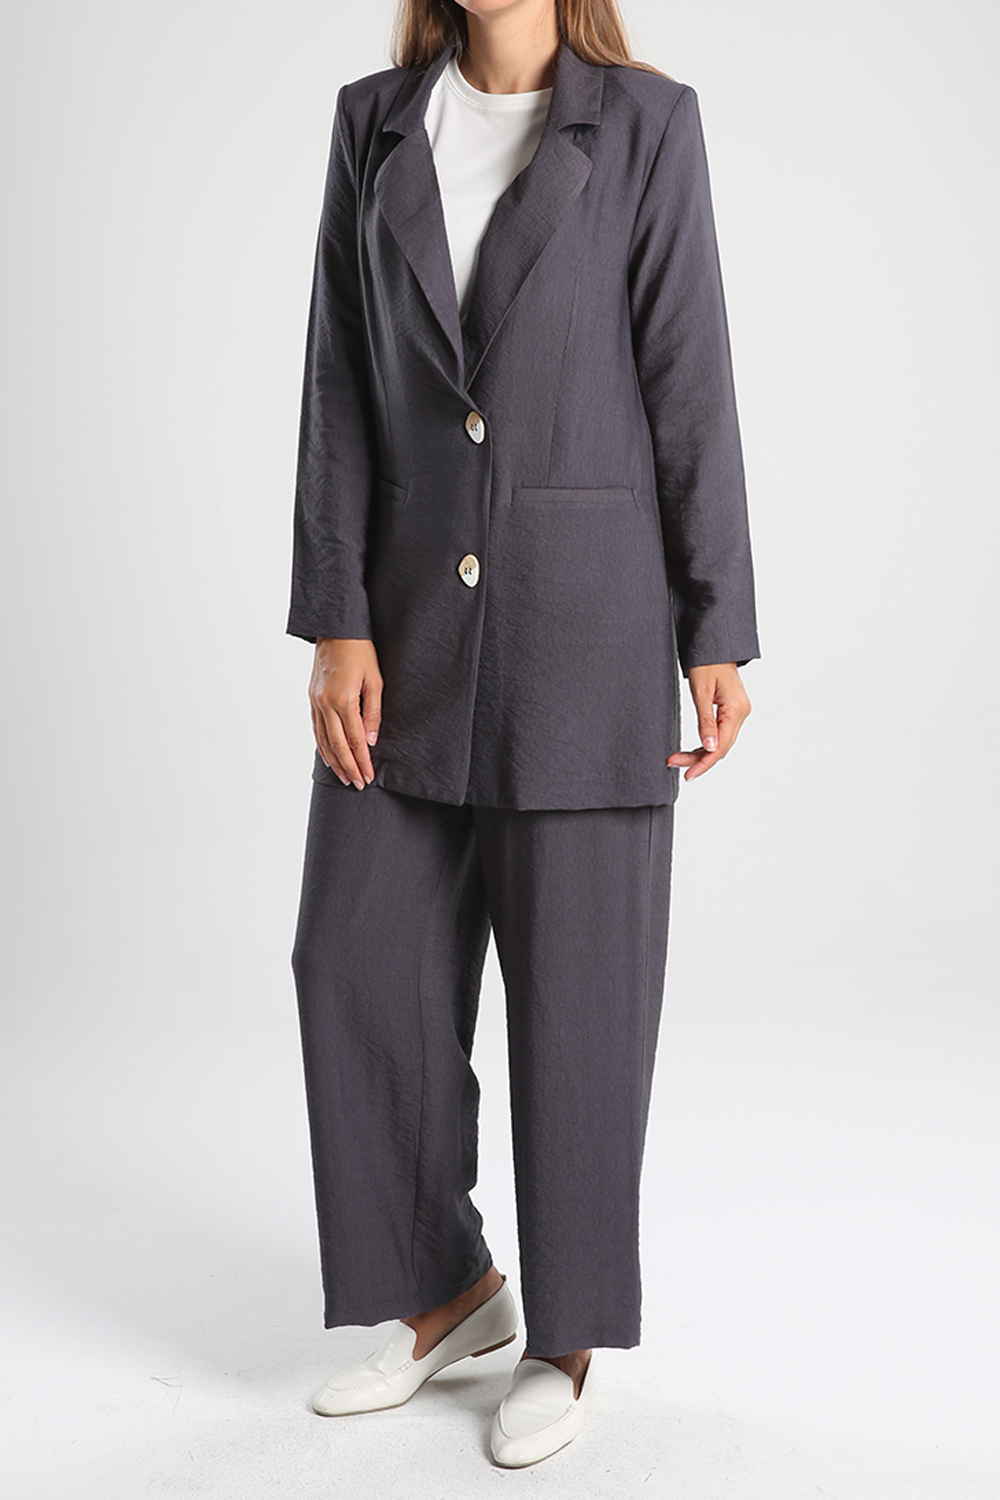 Hijab Suit With Jacket